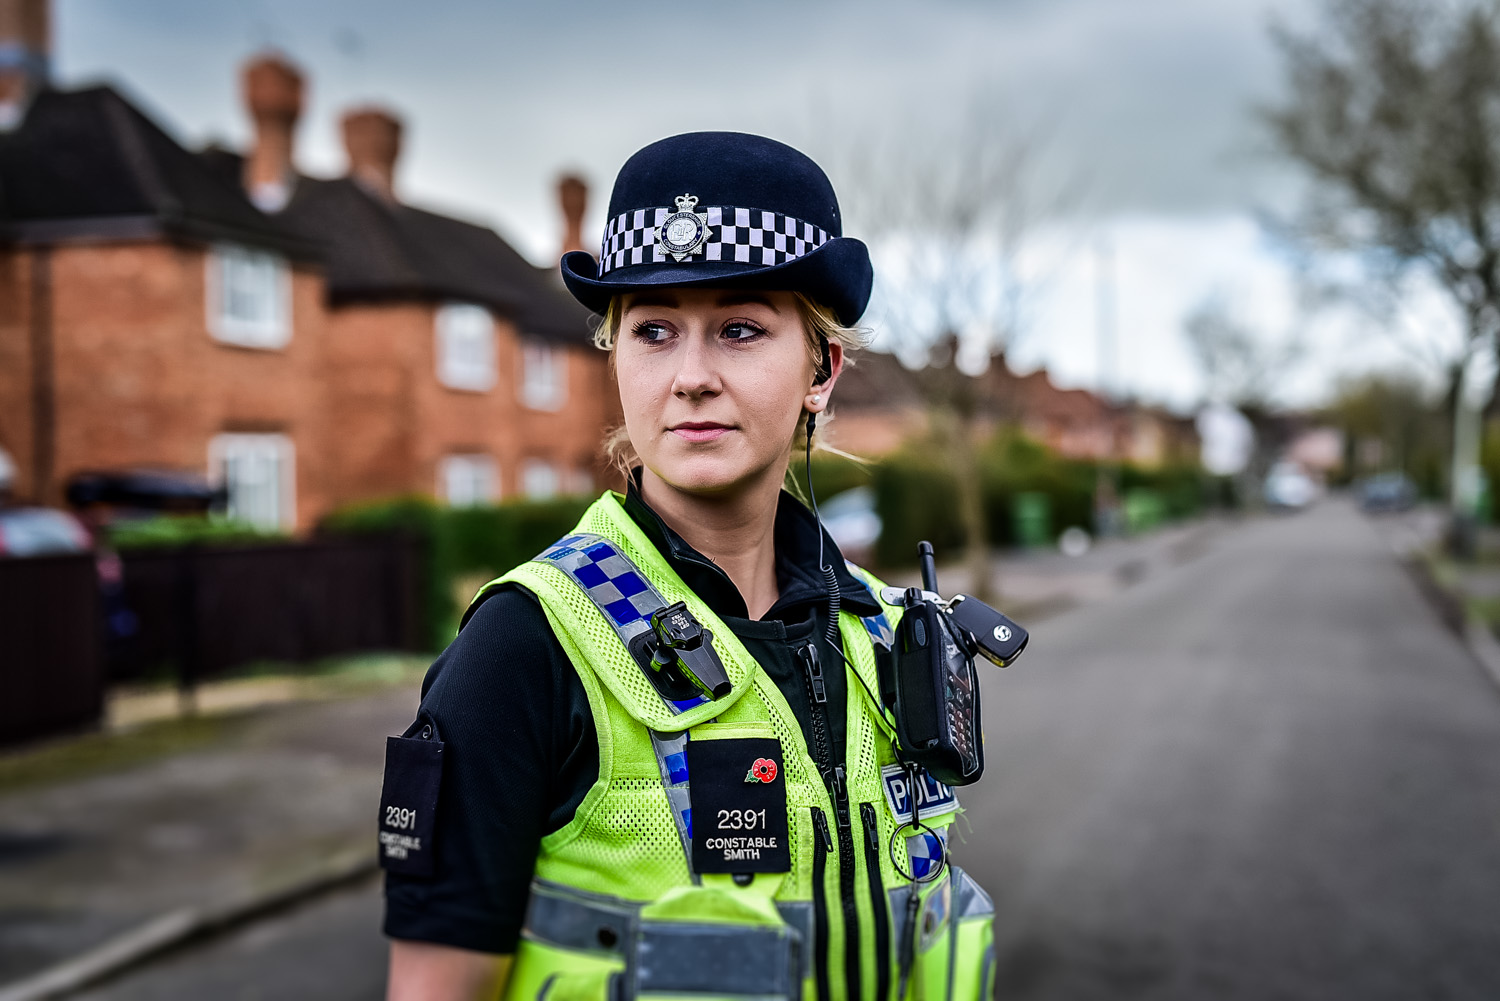 Press picture Gloucestershire Police constable in Cheltenham